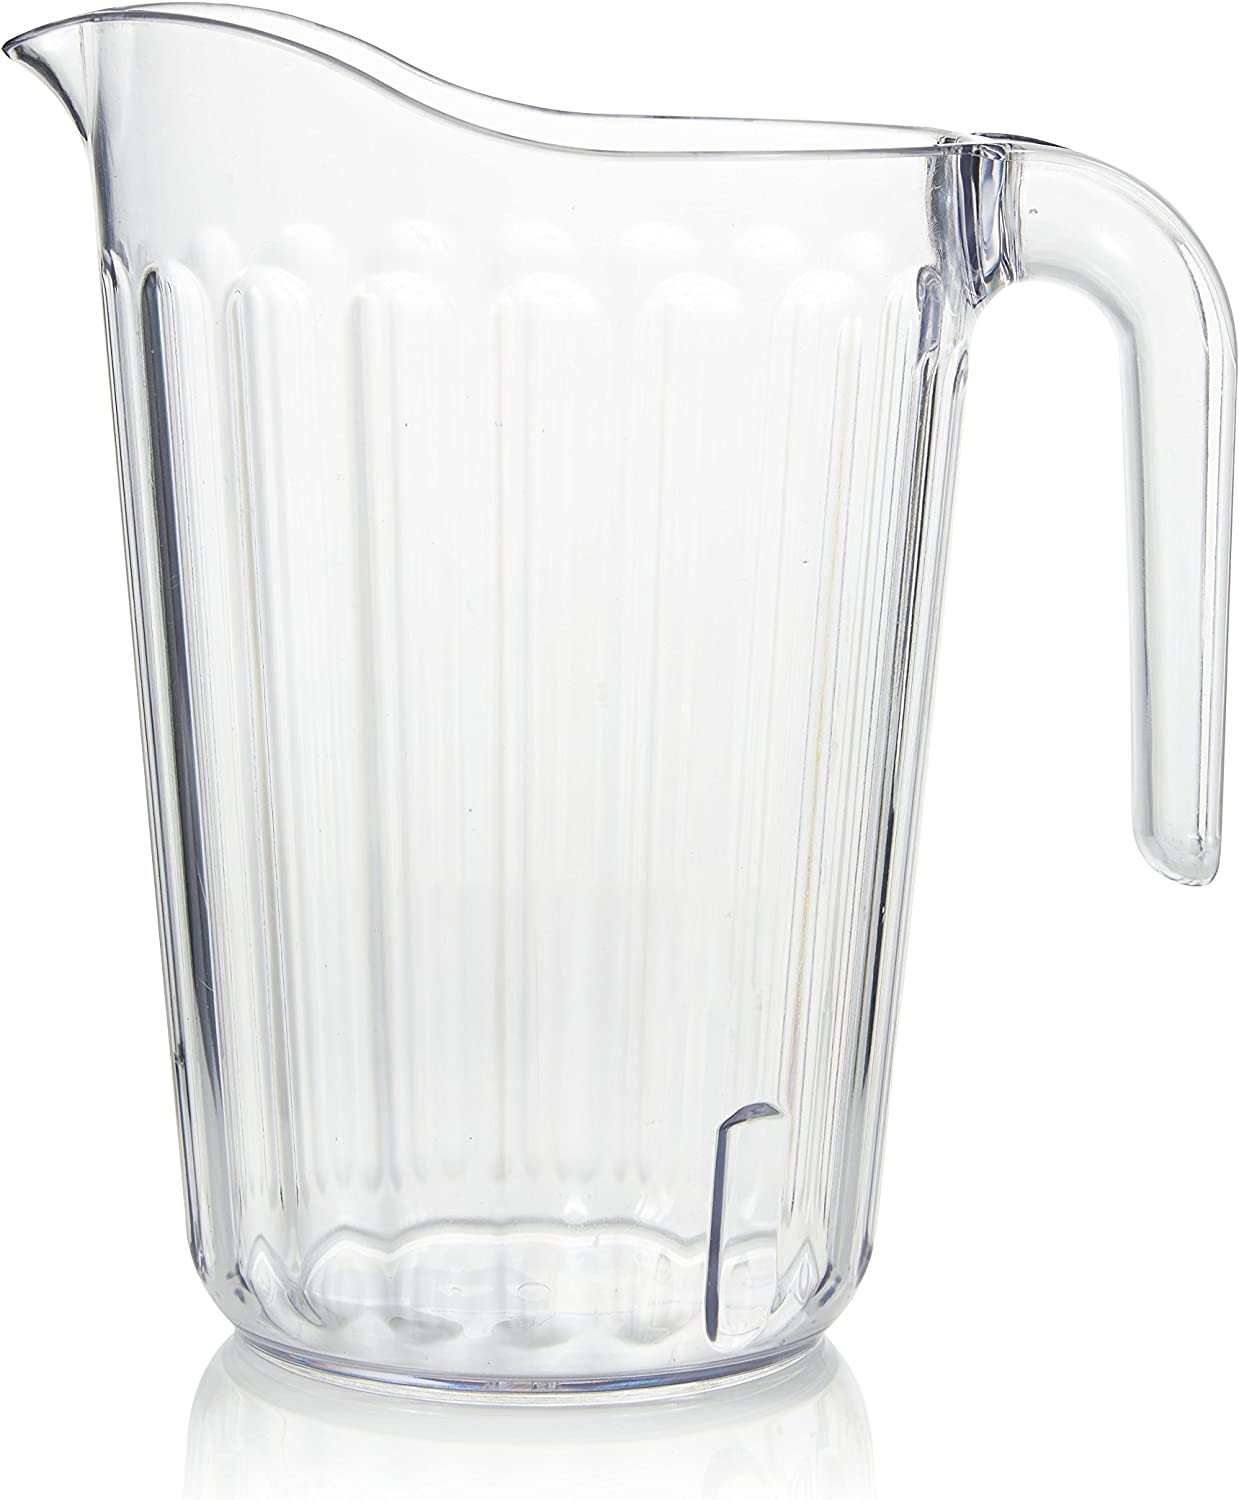 Arrow Home Products 60 Ounce, Clear 60 oz Stacking Pitcher